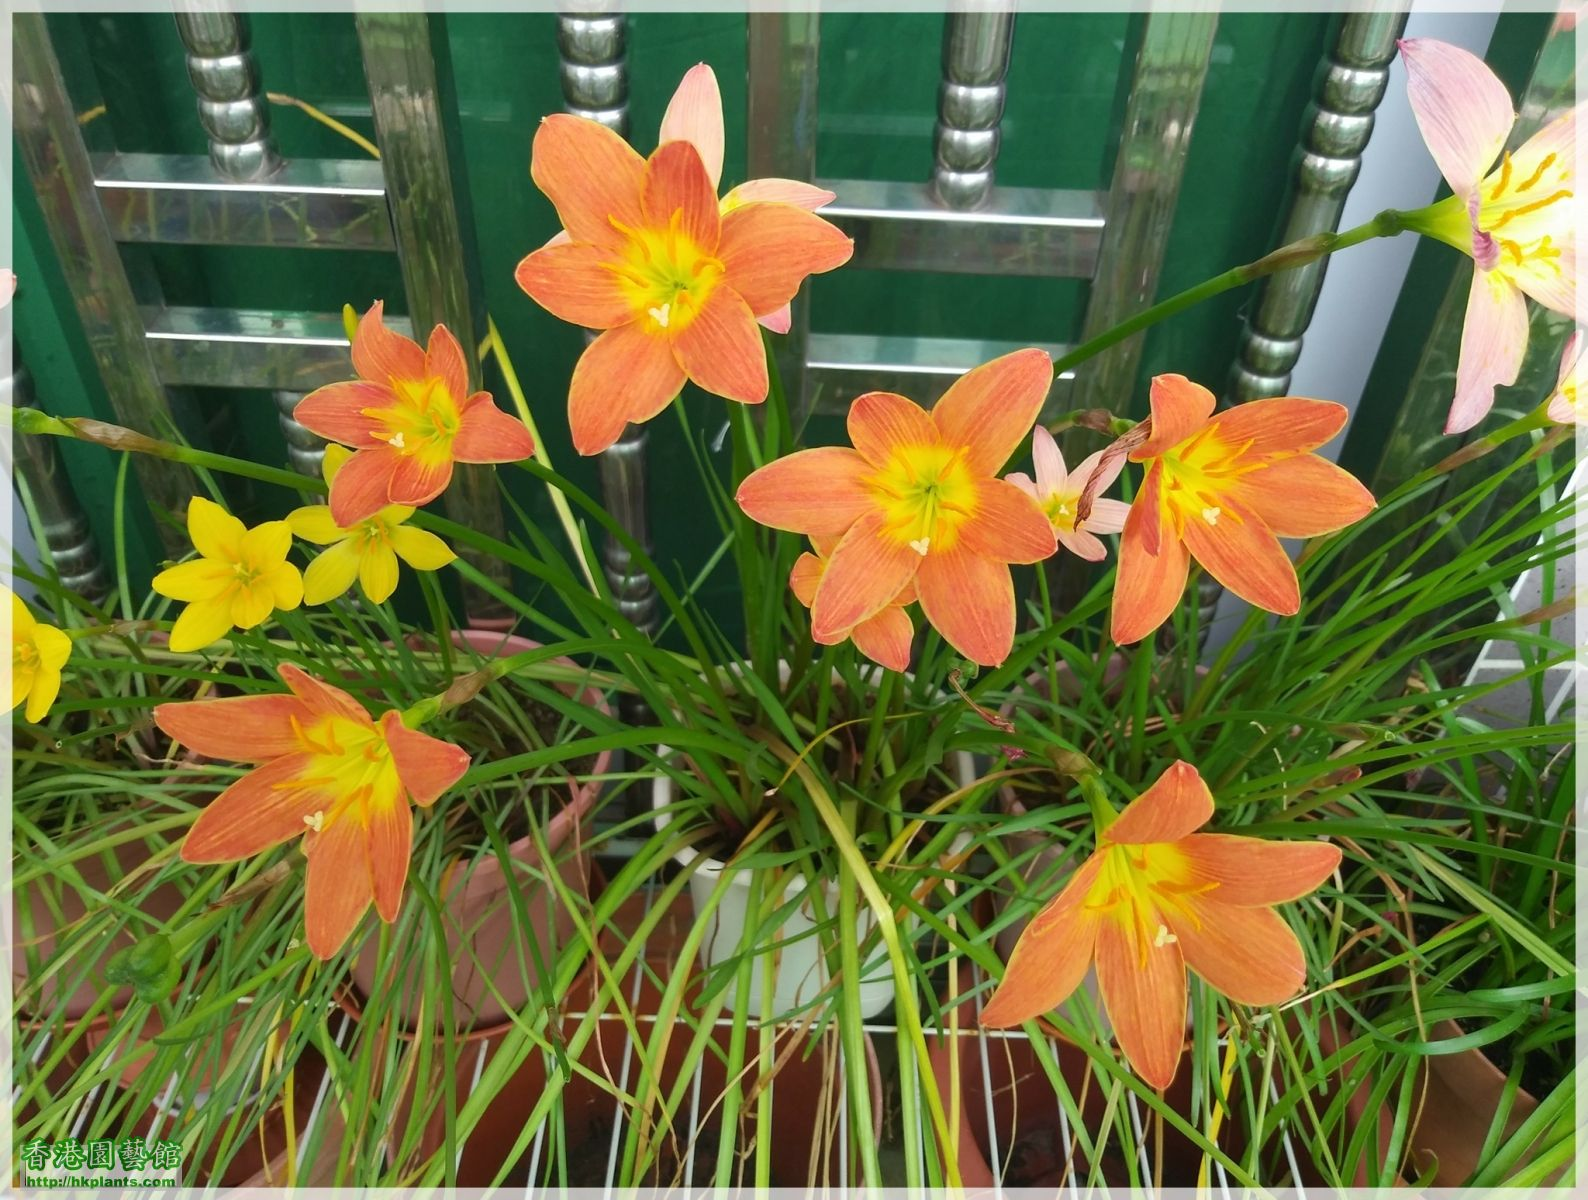 Zephyranthes Java-2018-017.jpg